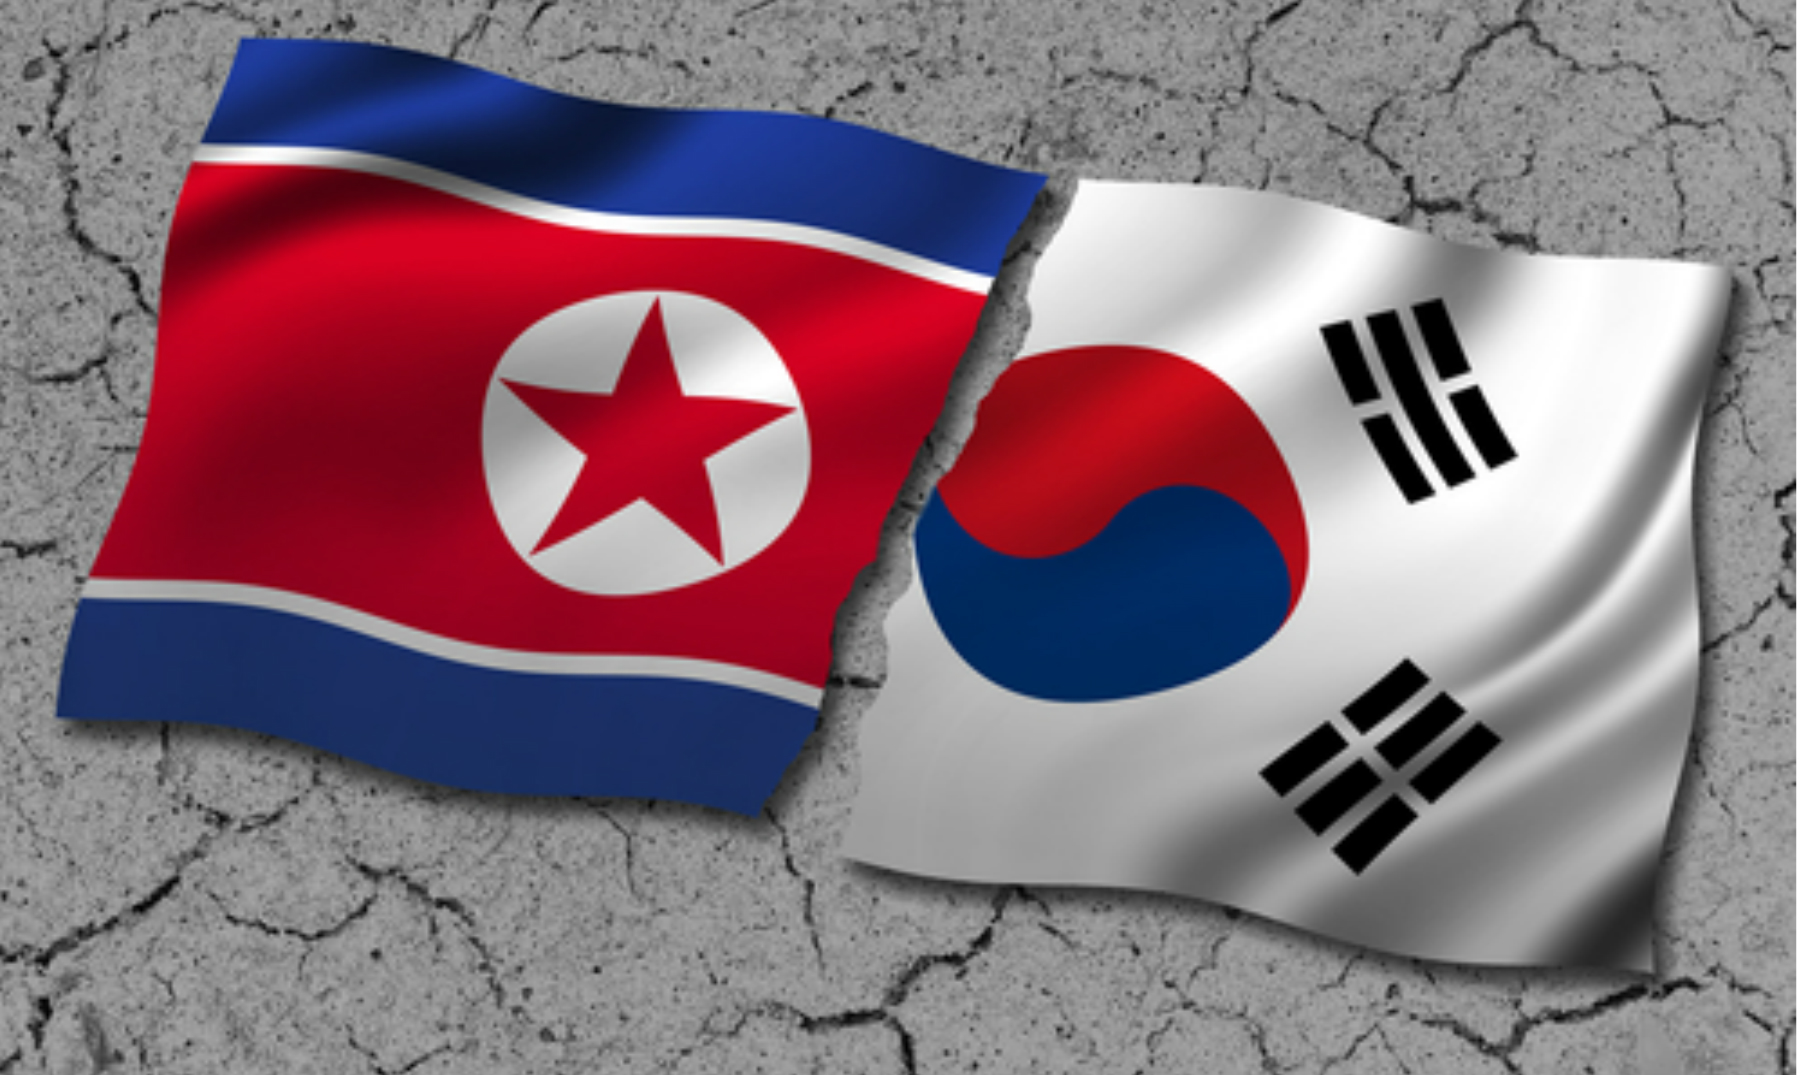 differences between the Koreas